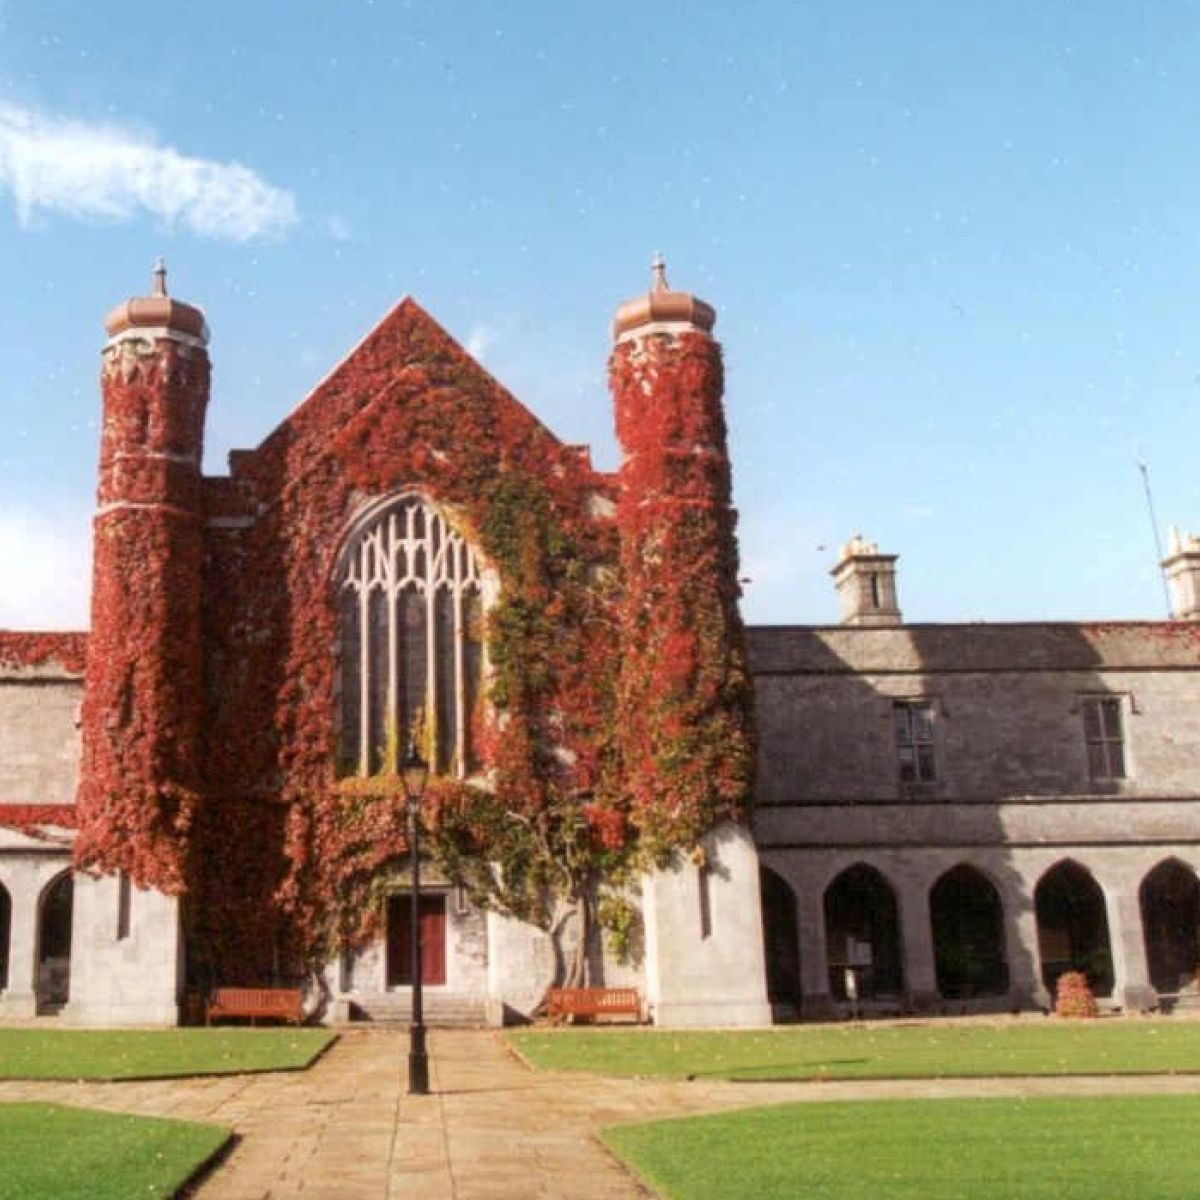 Students claiming religious bias urge further investigation